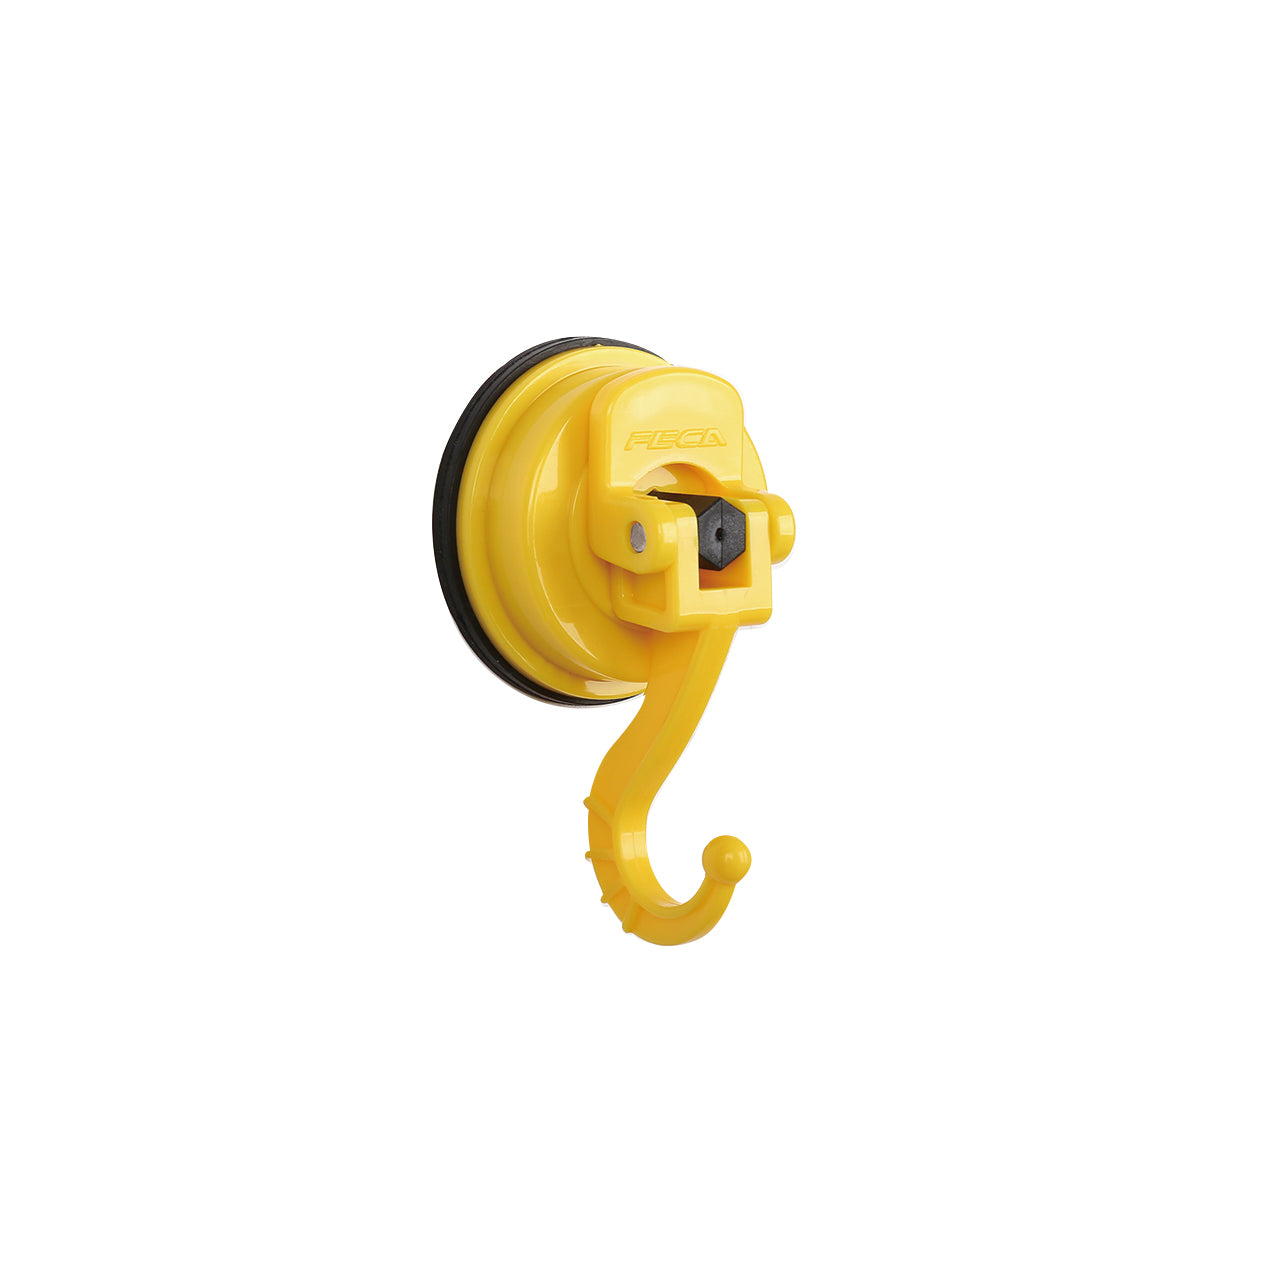 D26 DIANA SUCTION HOOK [Color: Yellow]